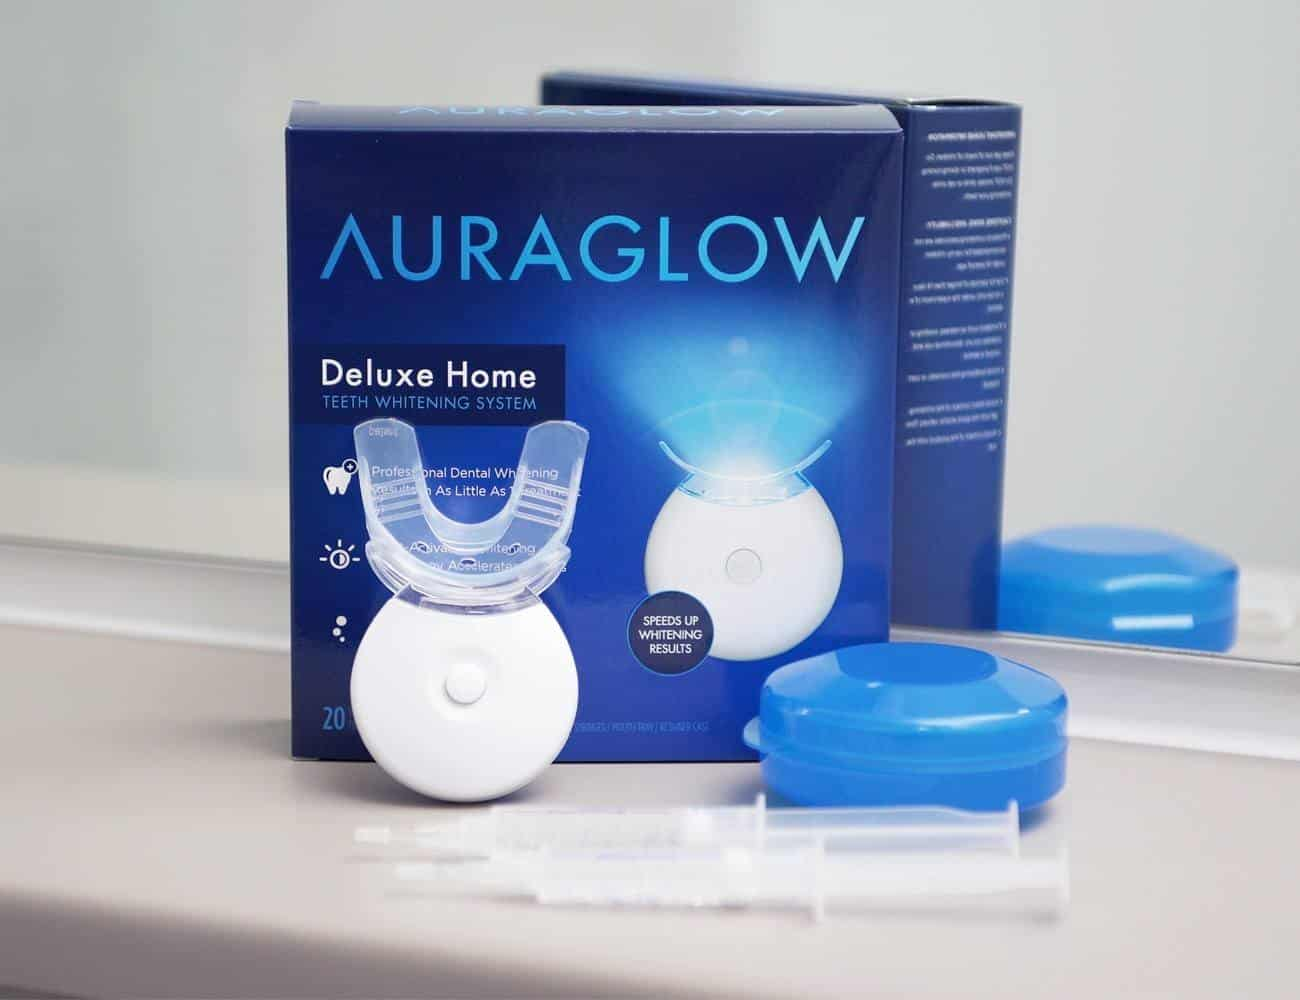 Auroglow teeth whitening review full kit